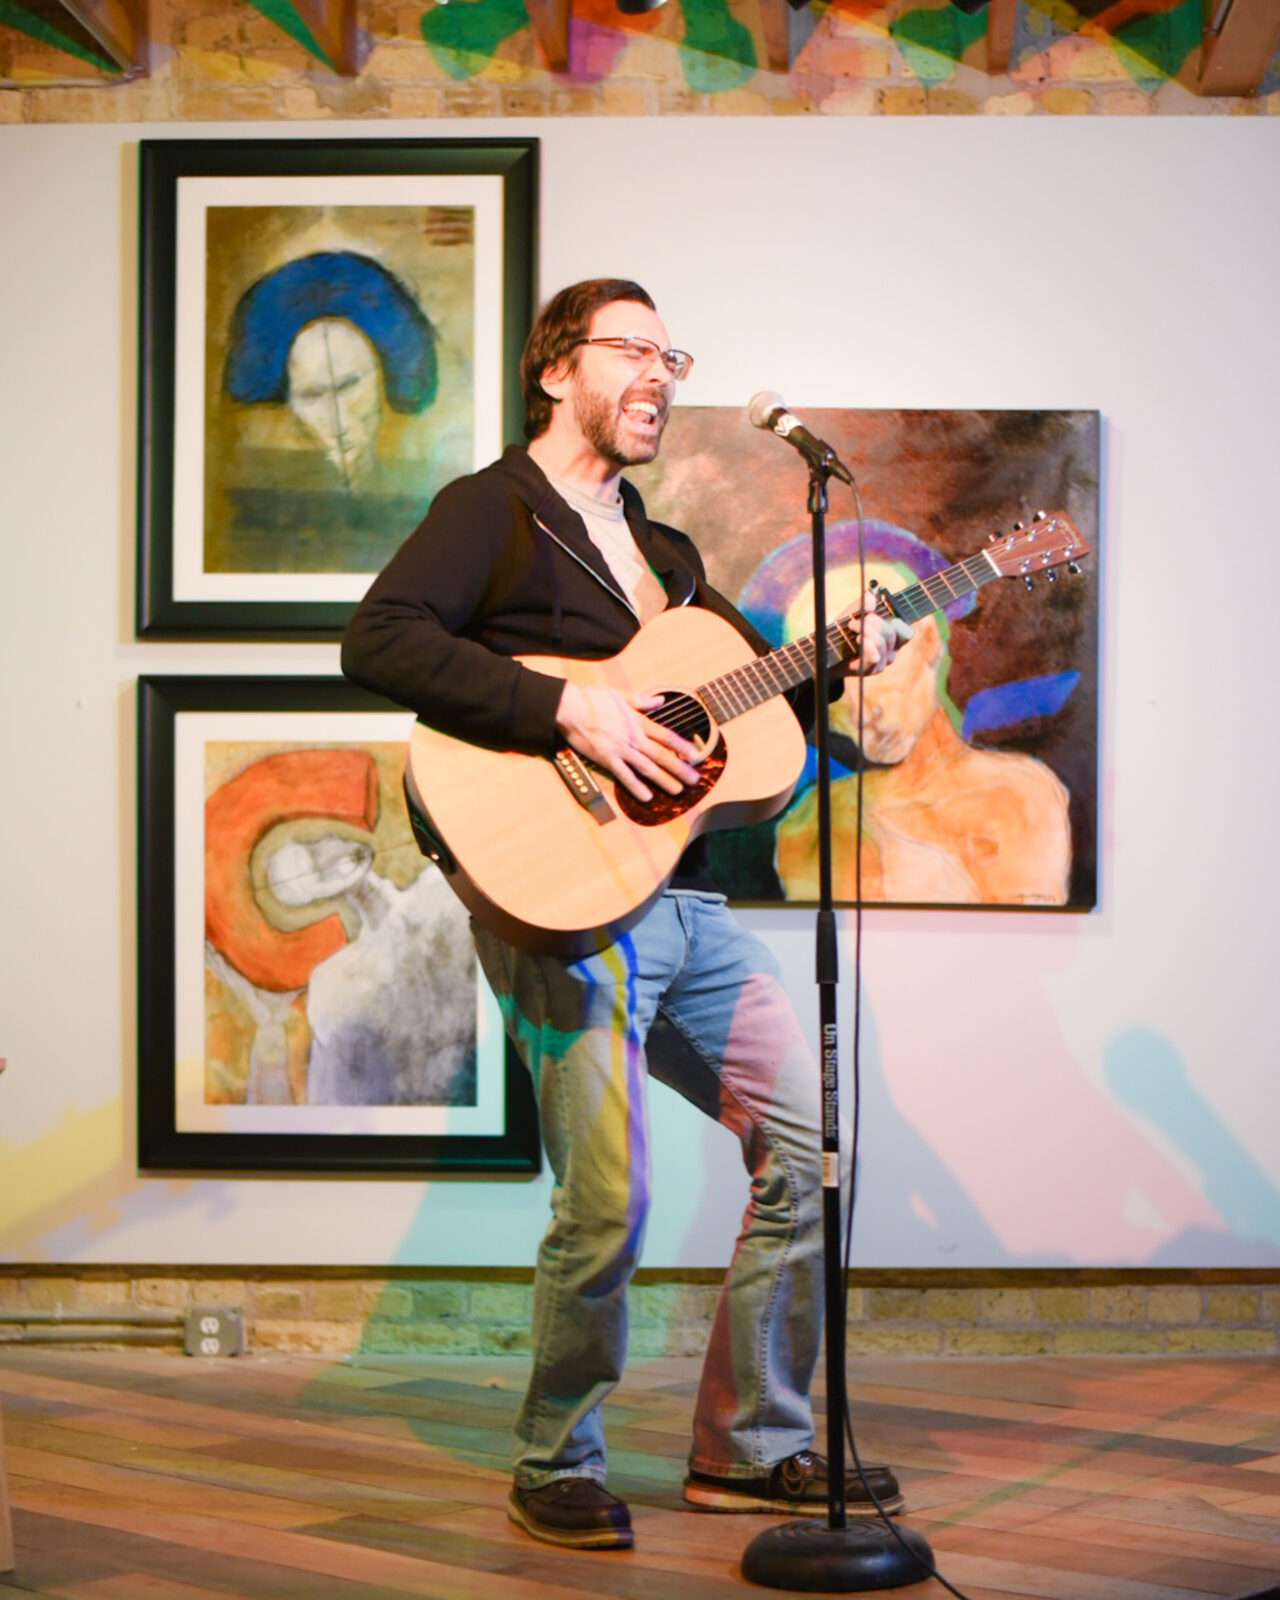 man in spotlit stage behind a microphone on a stand holding a guitar